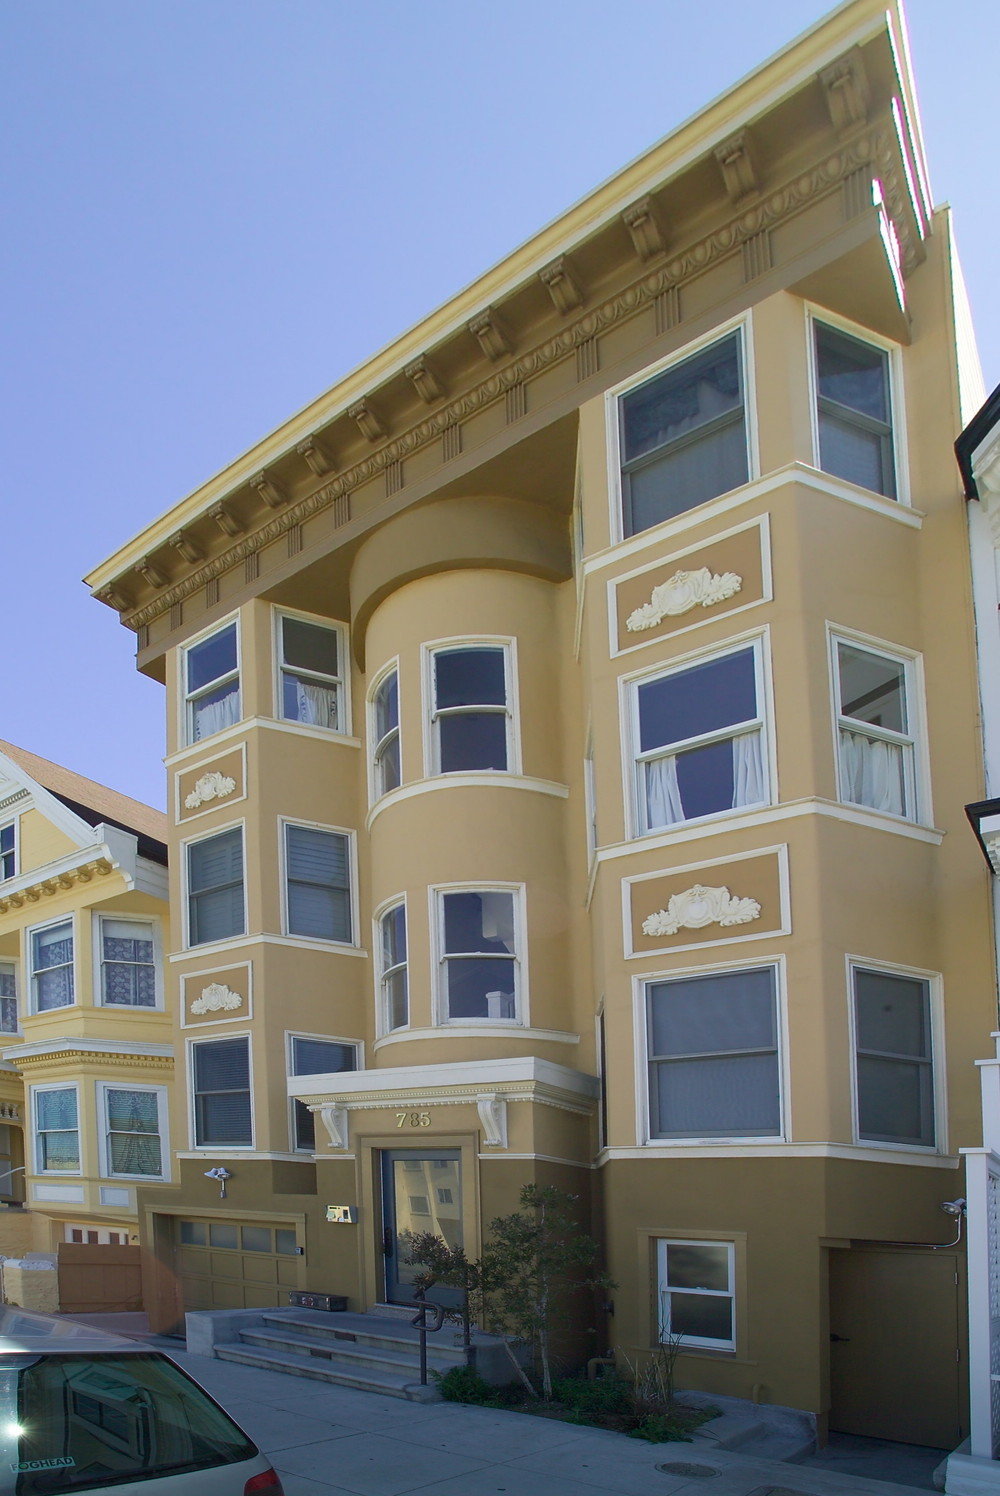 HomeAway is fighting for the Right to Rent in San Francisco